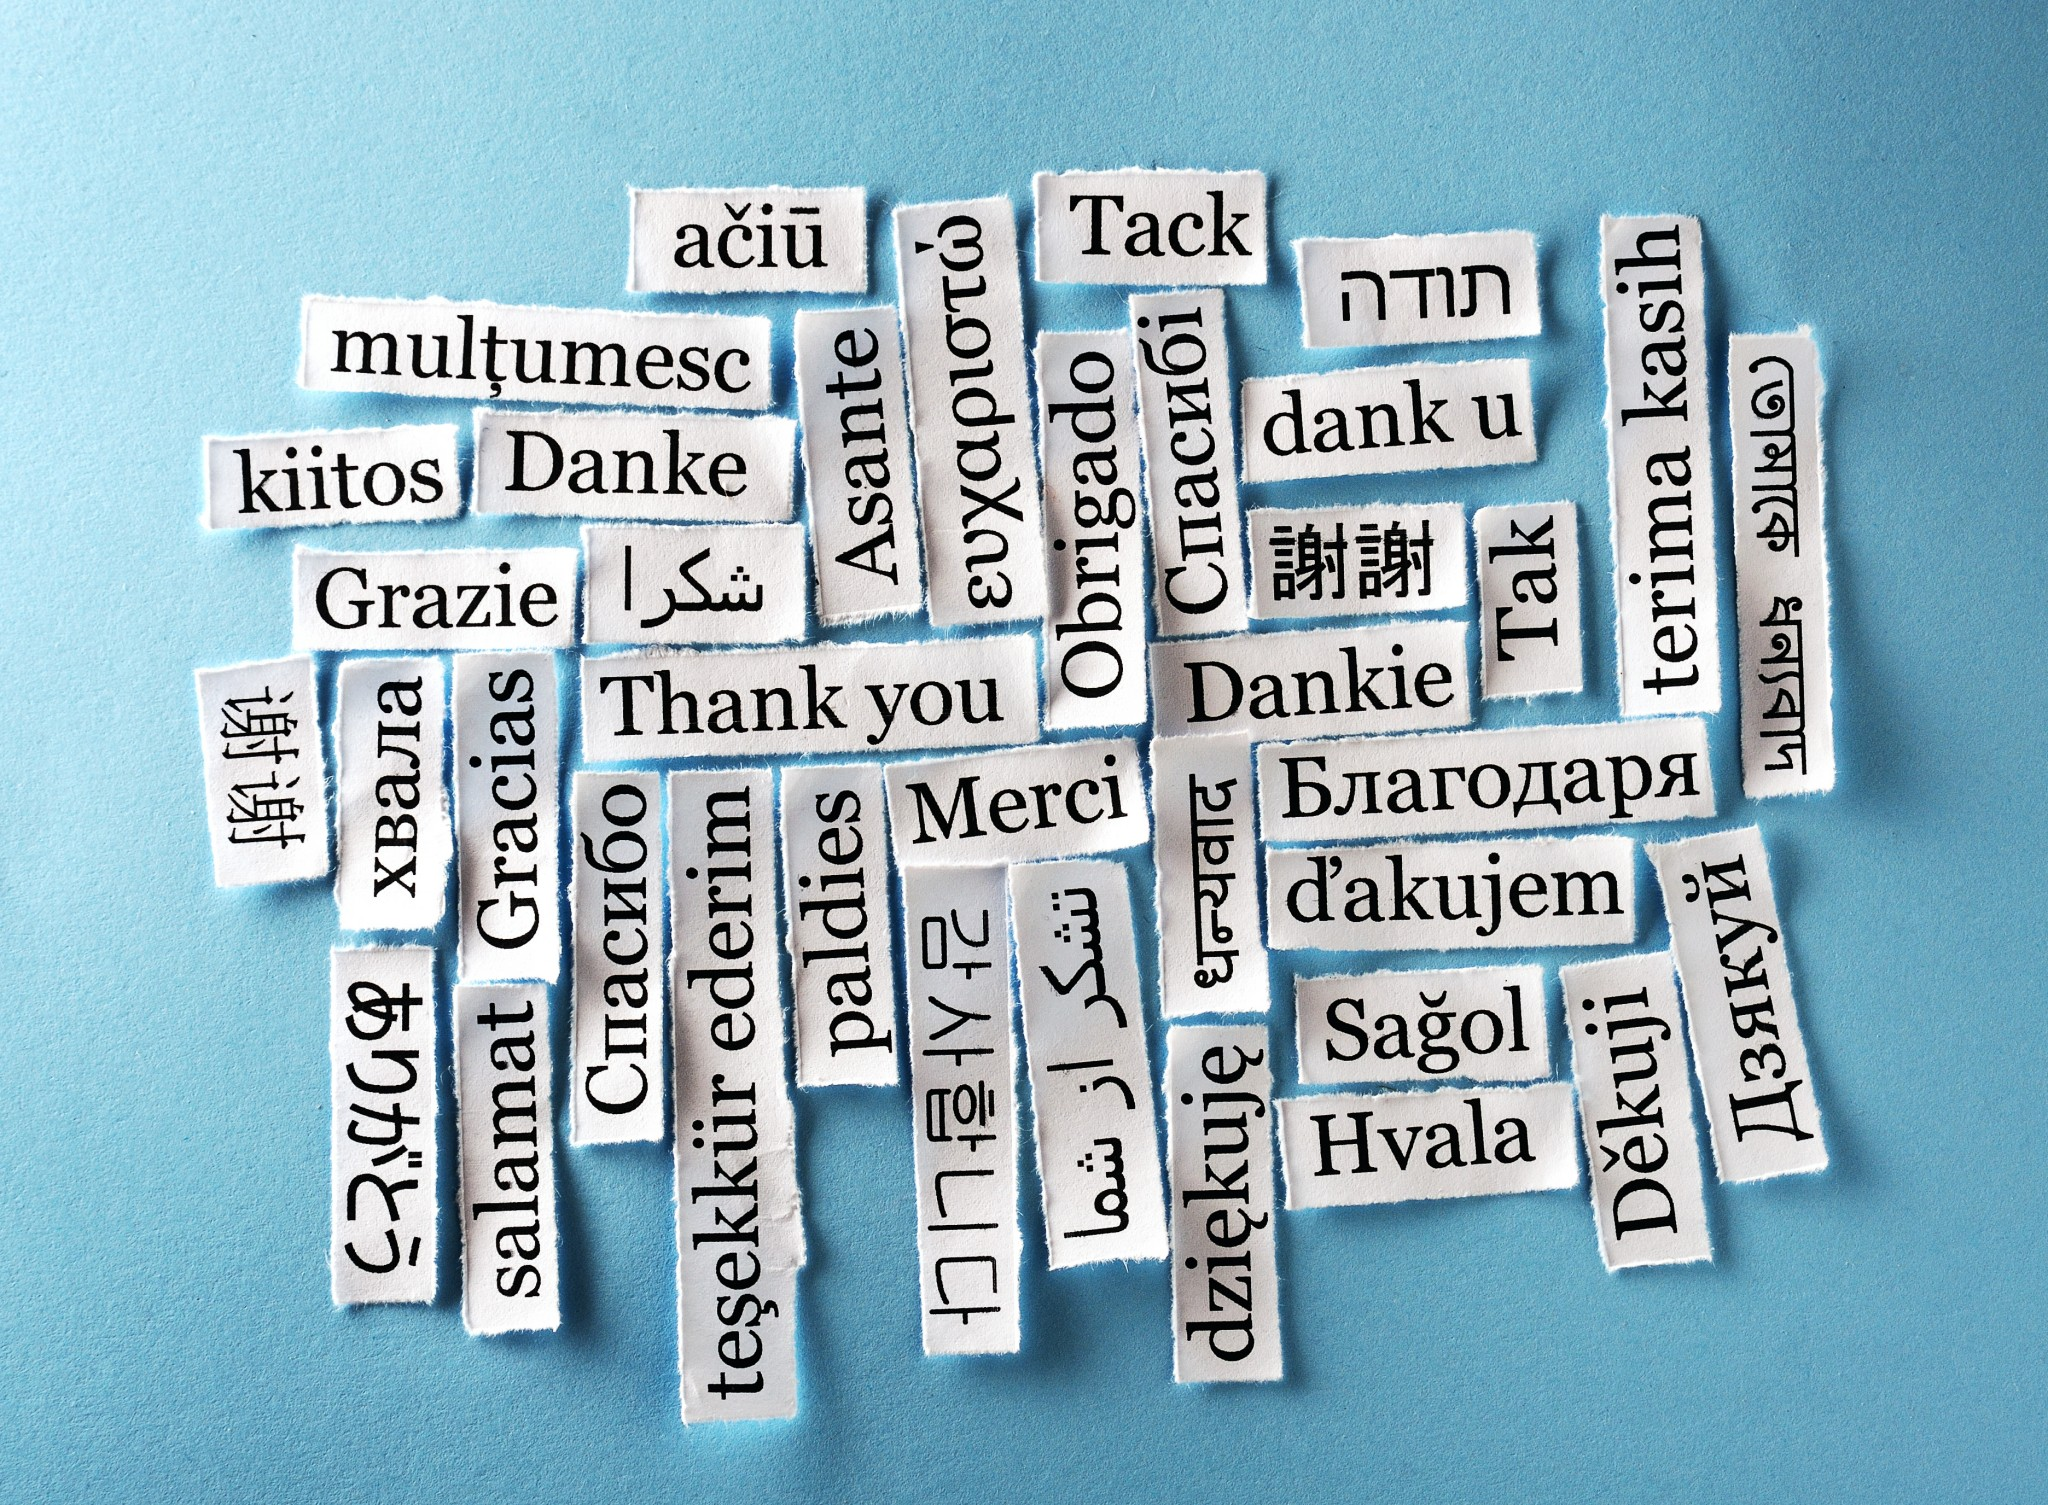 Weekly Economic News Roundup and endangered languages